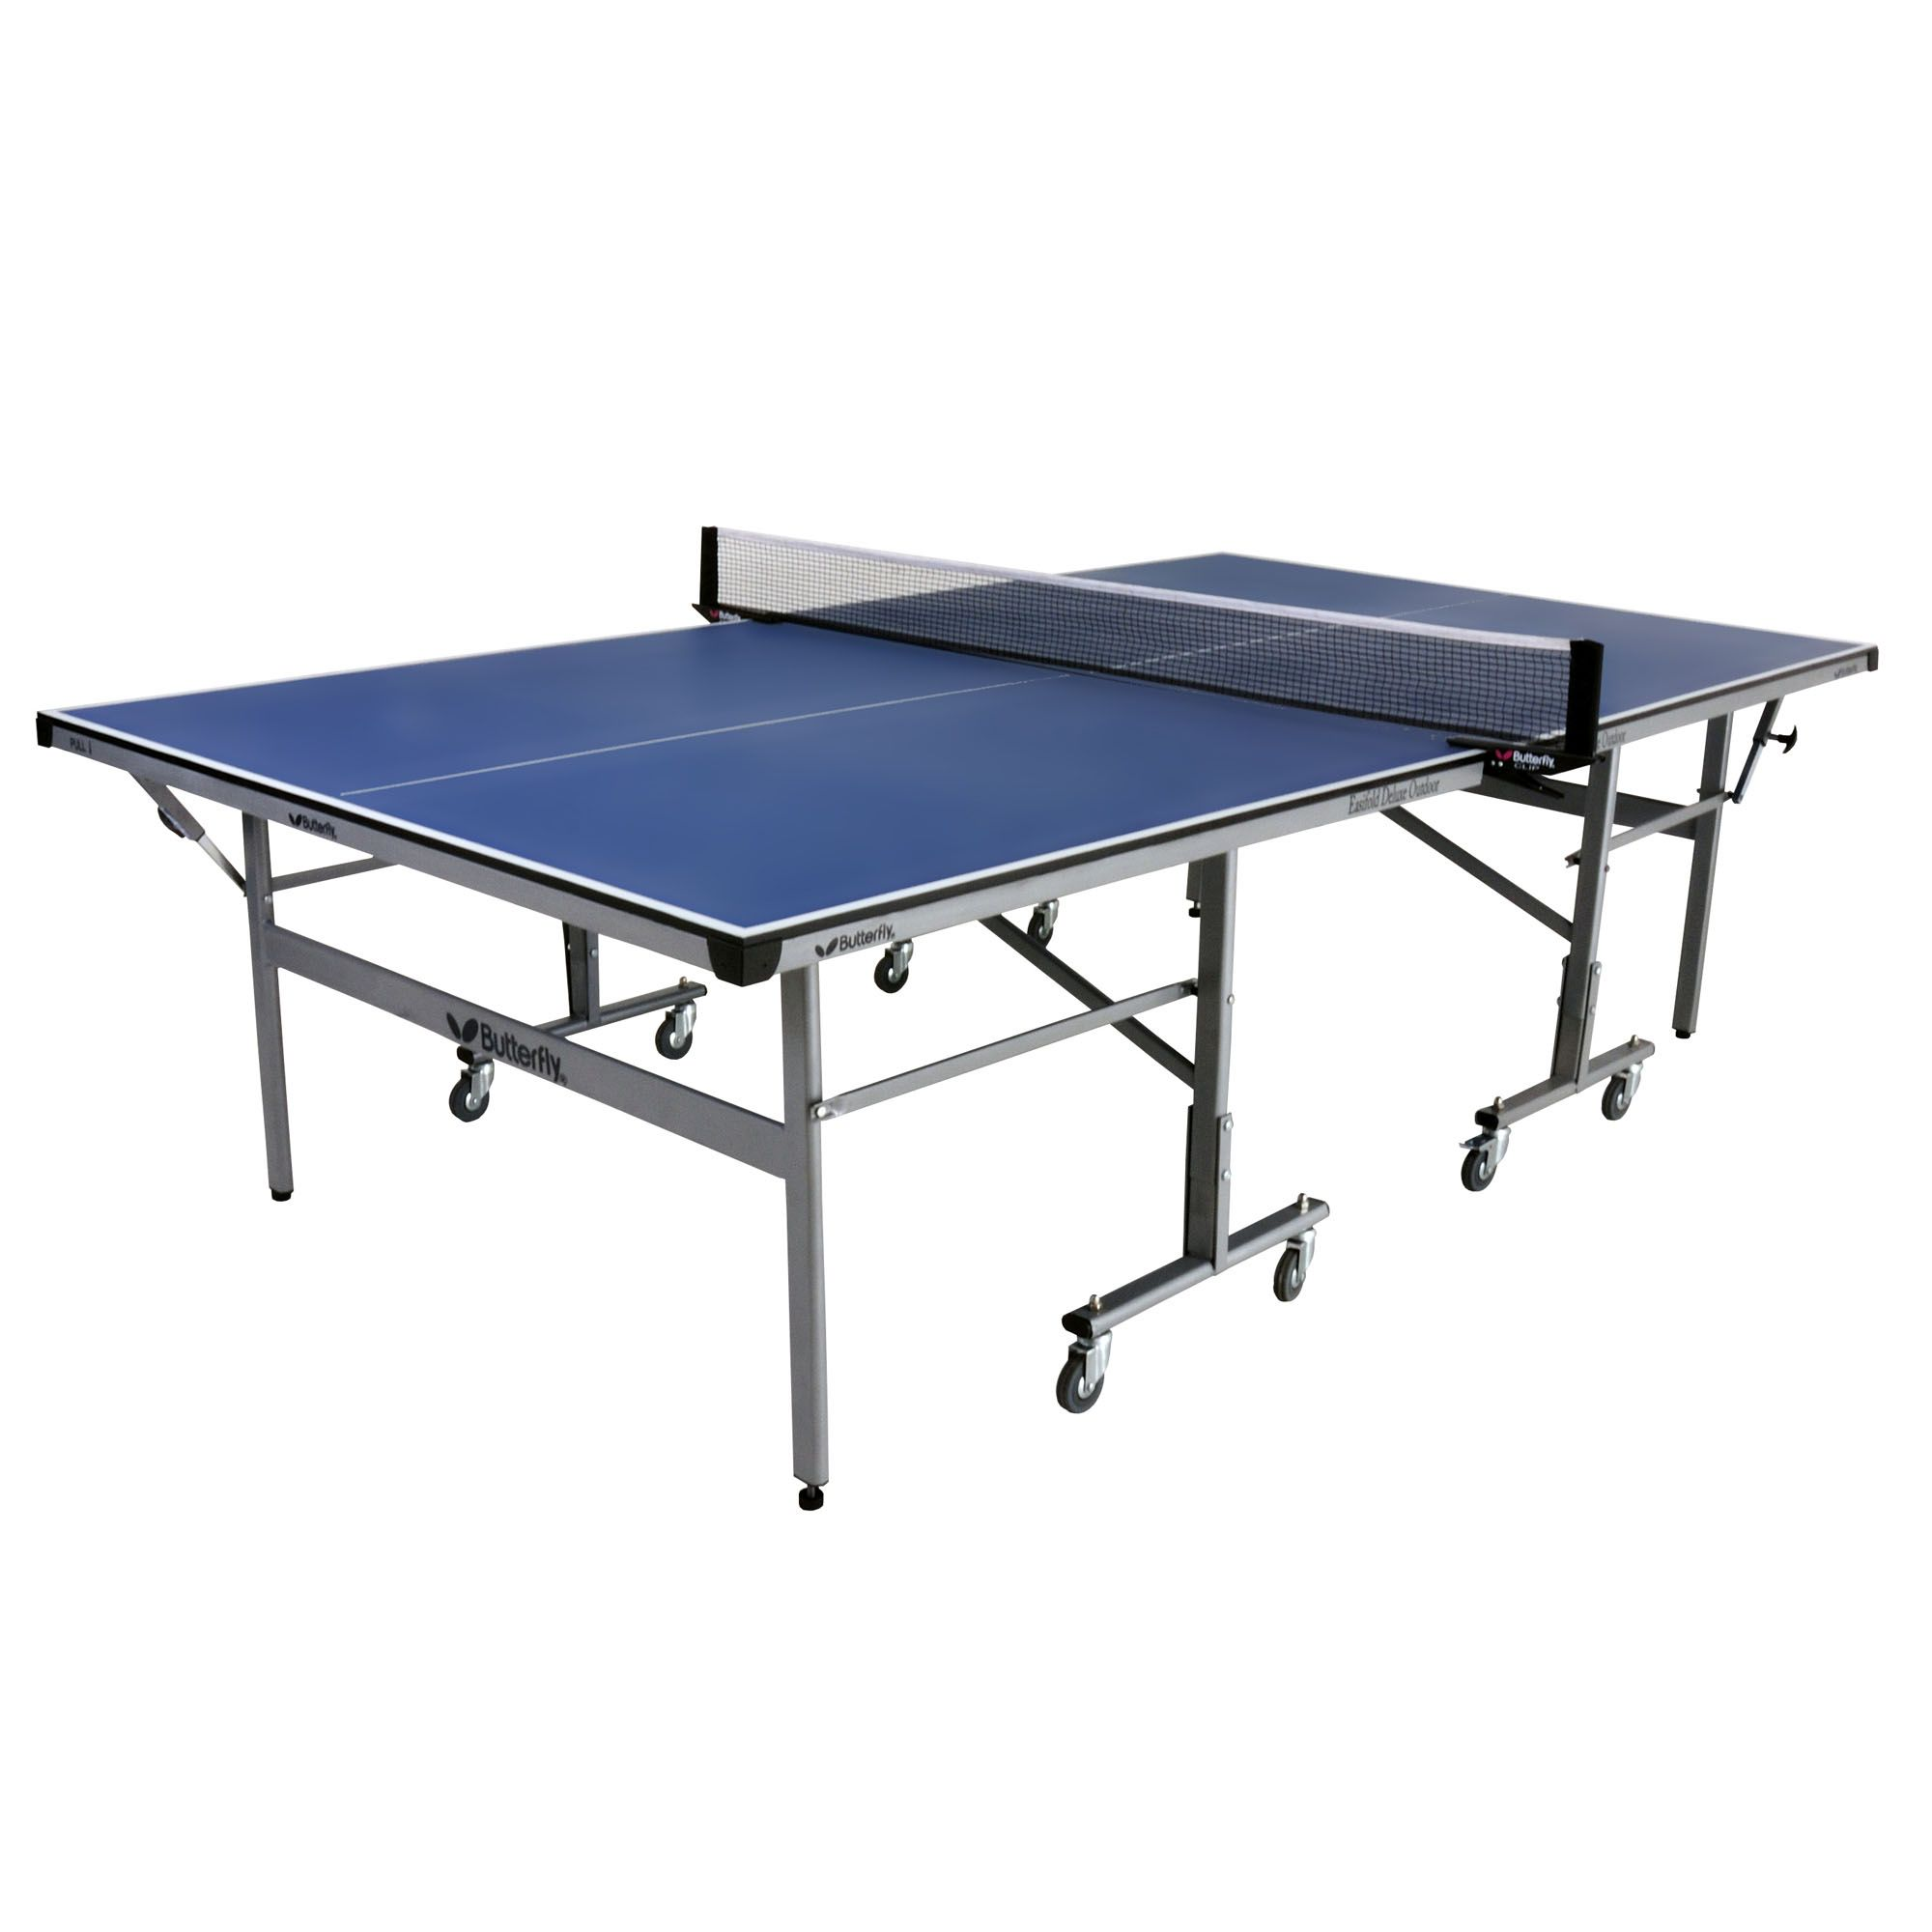 Butterfly easifold deluxe outdoor table tennis table for Table tennis